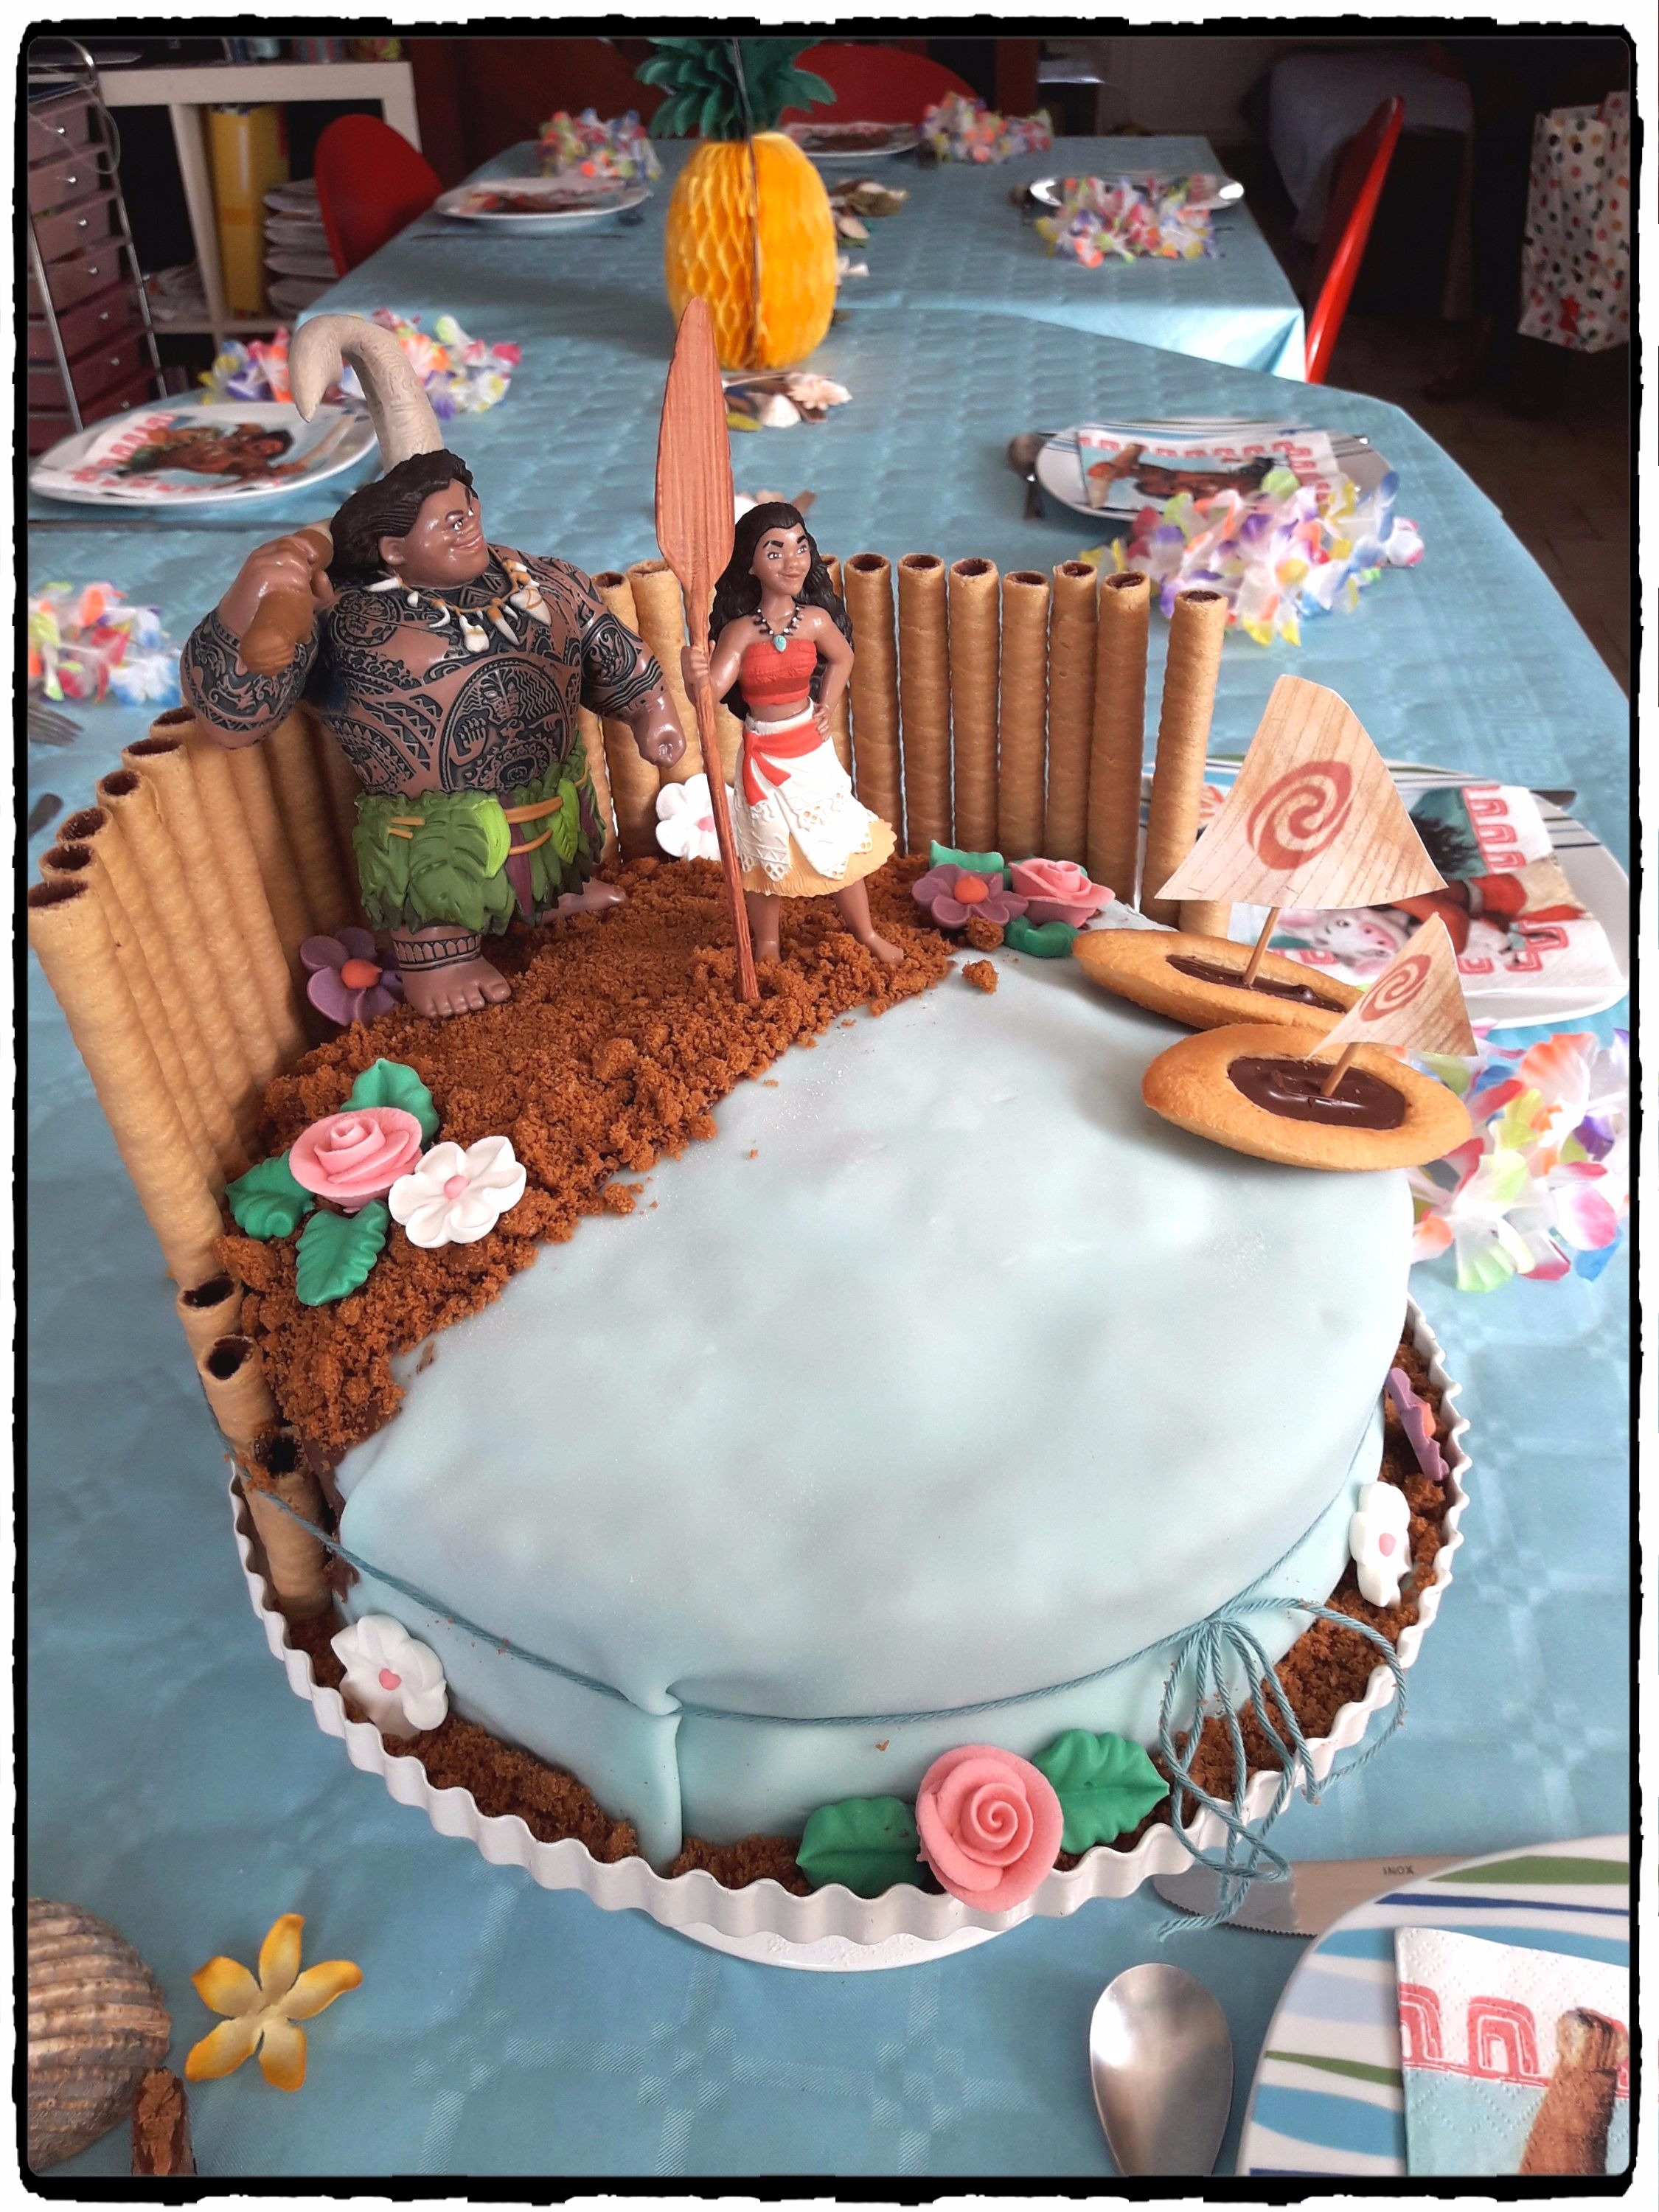 Decoration Gateau Fille 6 Ans Anniversaire Vaiana Thème Tropical 7 Ans Ashley